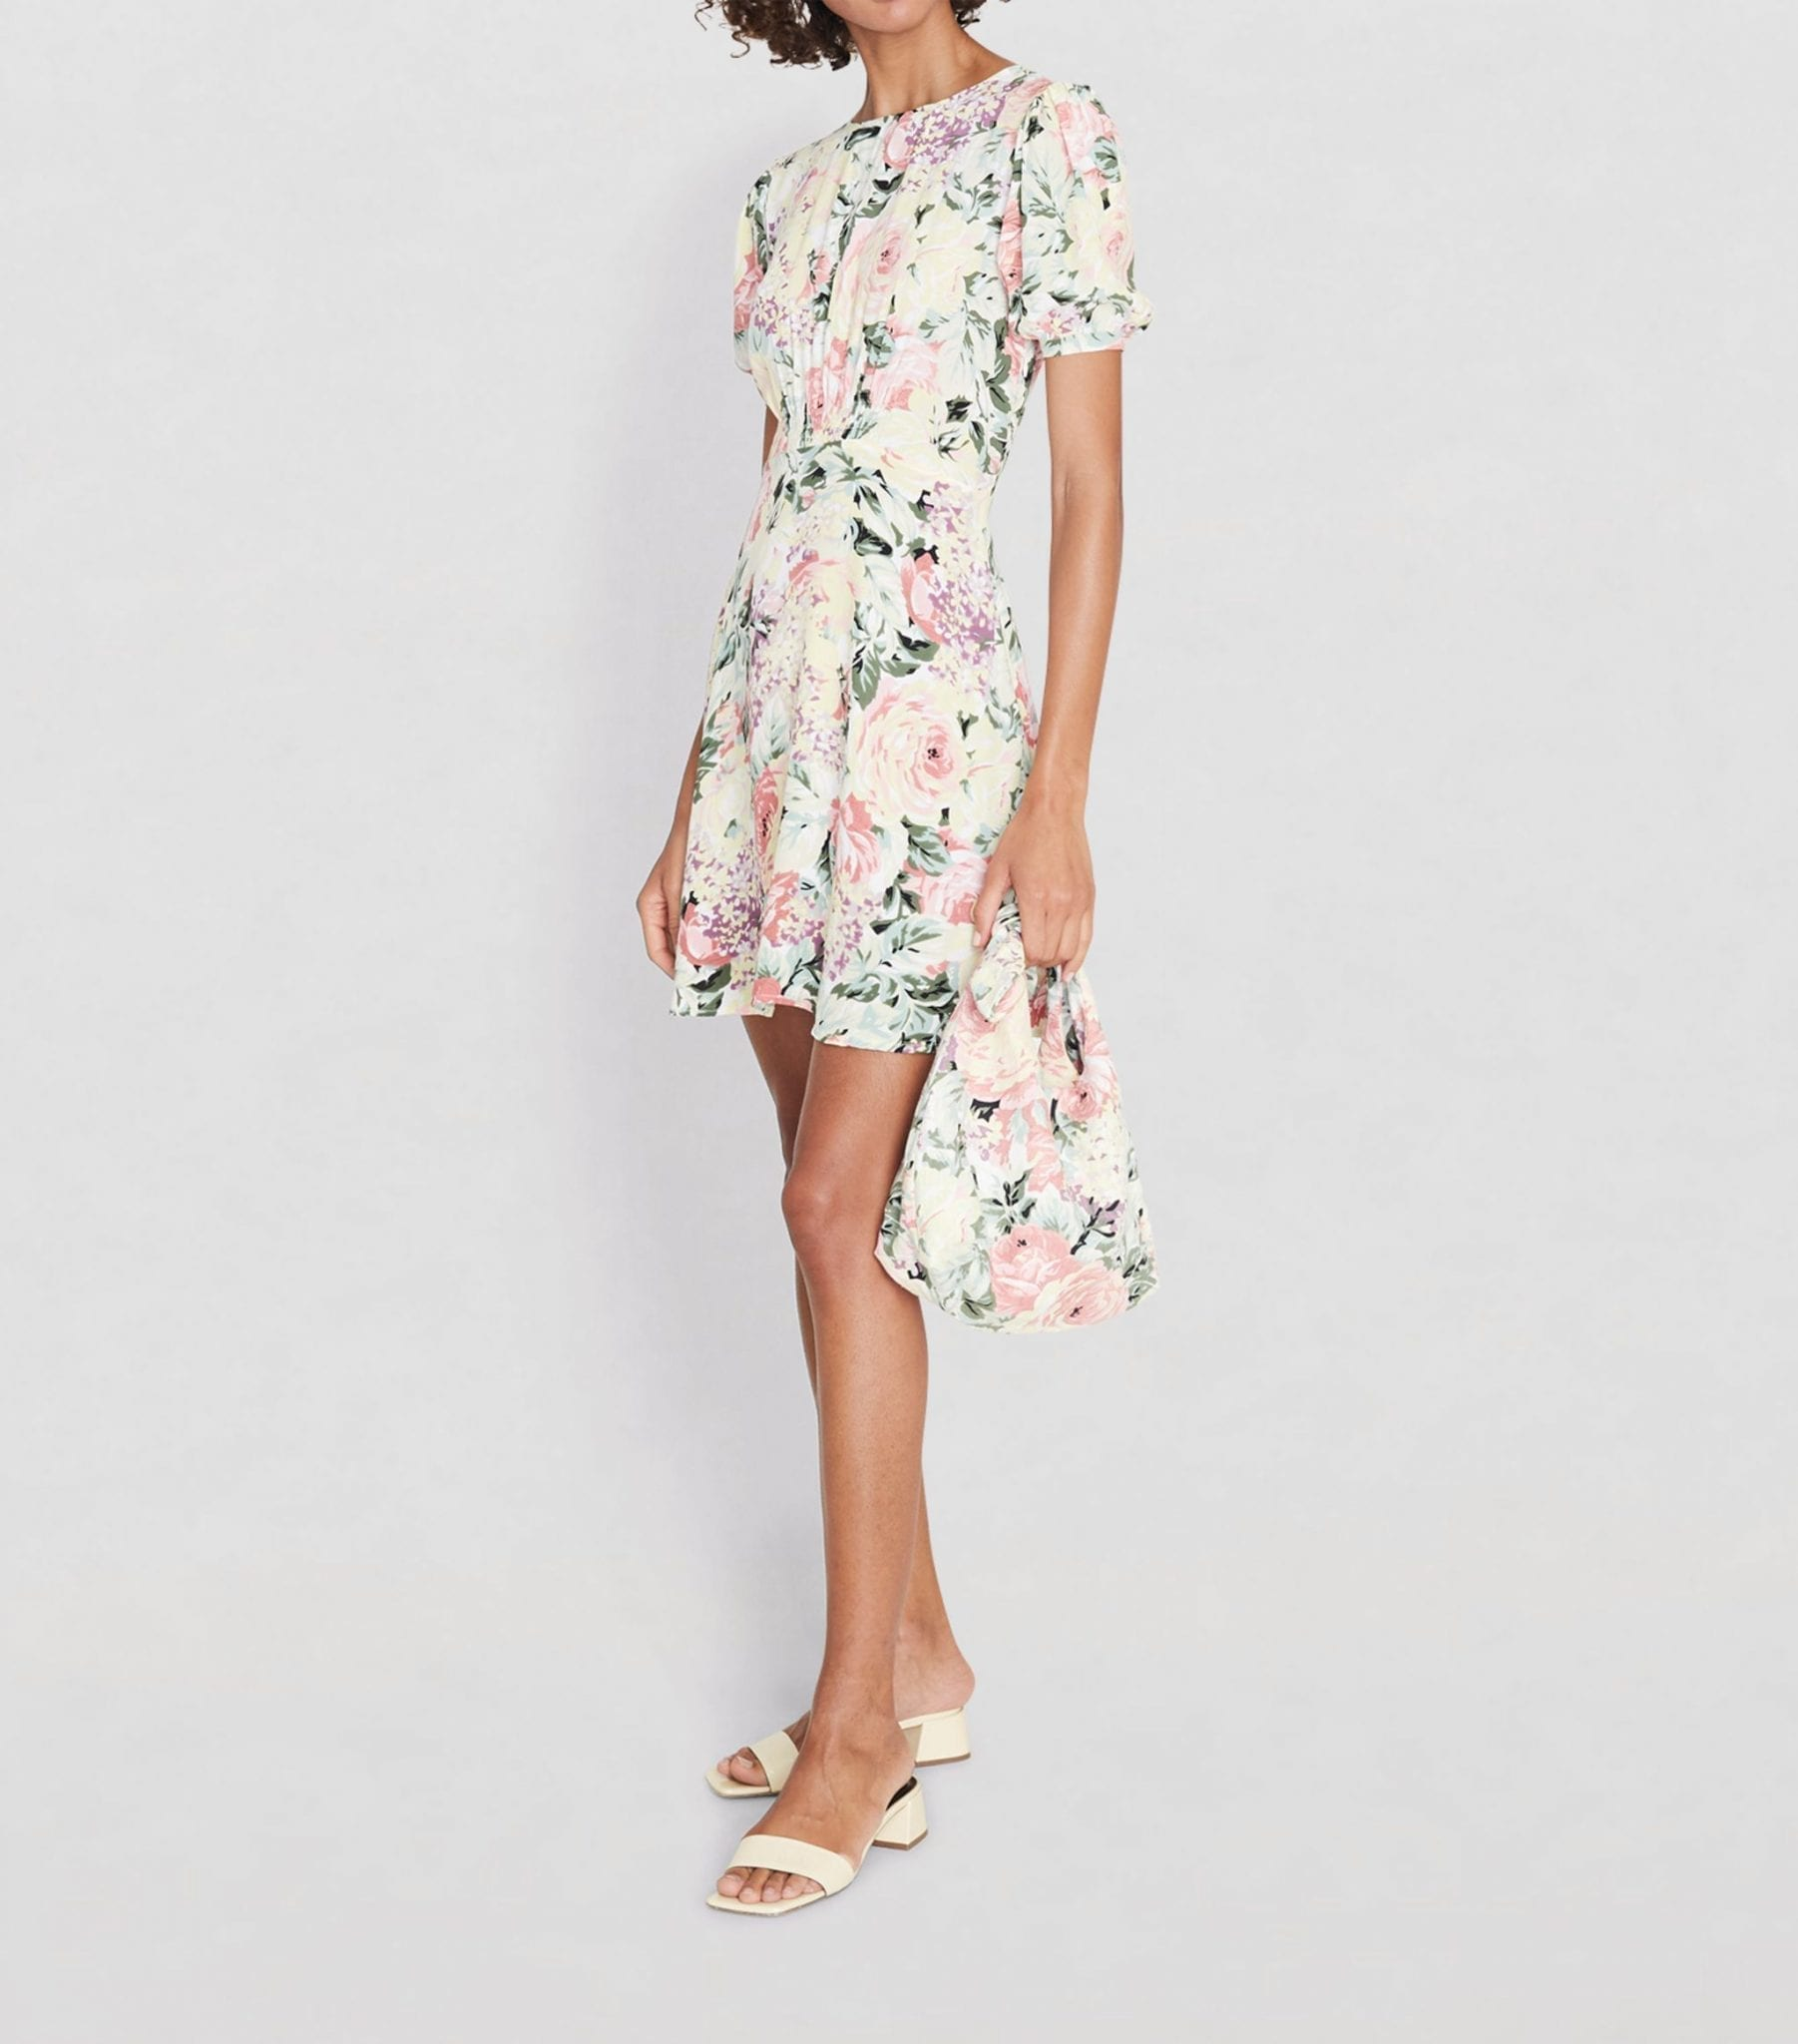 FAITHFULL THE BRAND Floral Sidonie Mini Dress